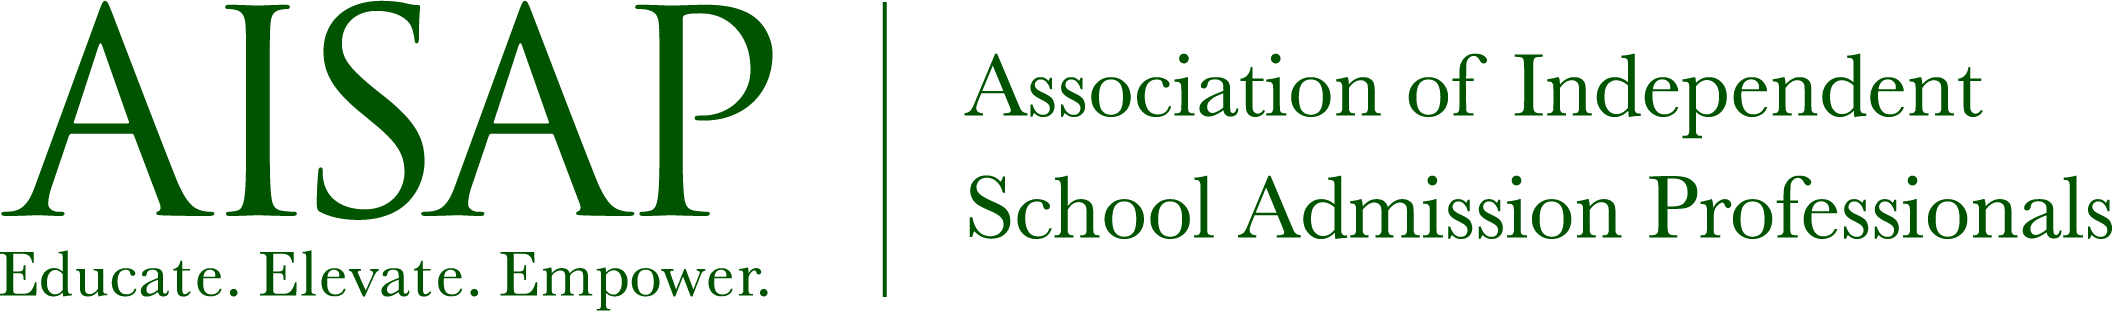 AISAP Micro-Credential Website - Where the Admission Professional comes to learn